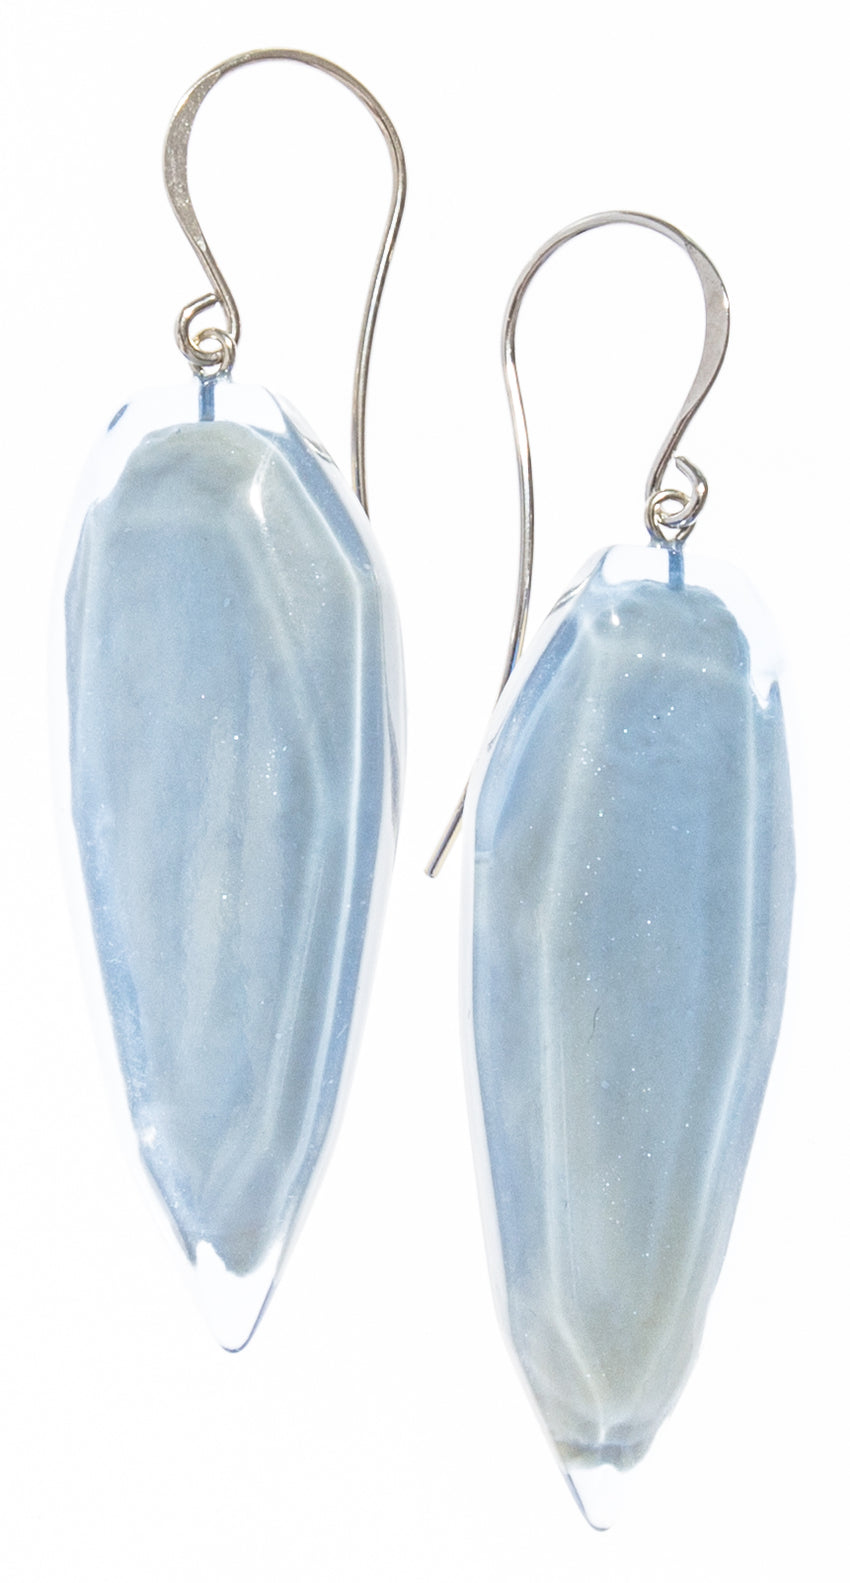 5350504COM2Q00,earring PLAYA 1bead shorthook, combinationblue